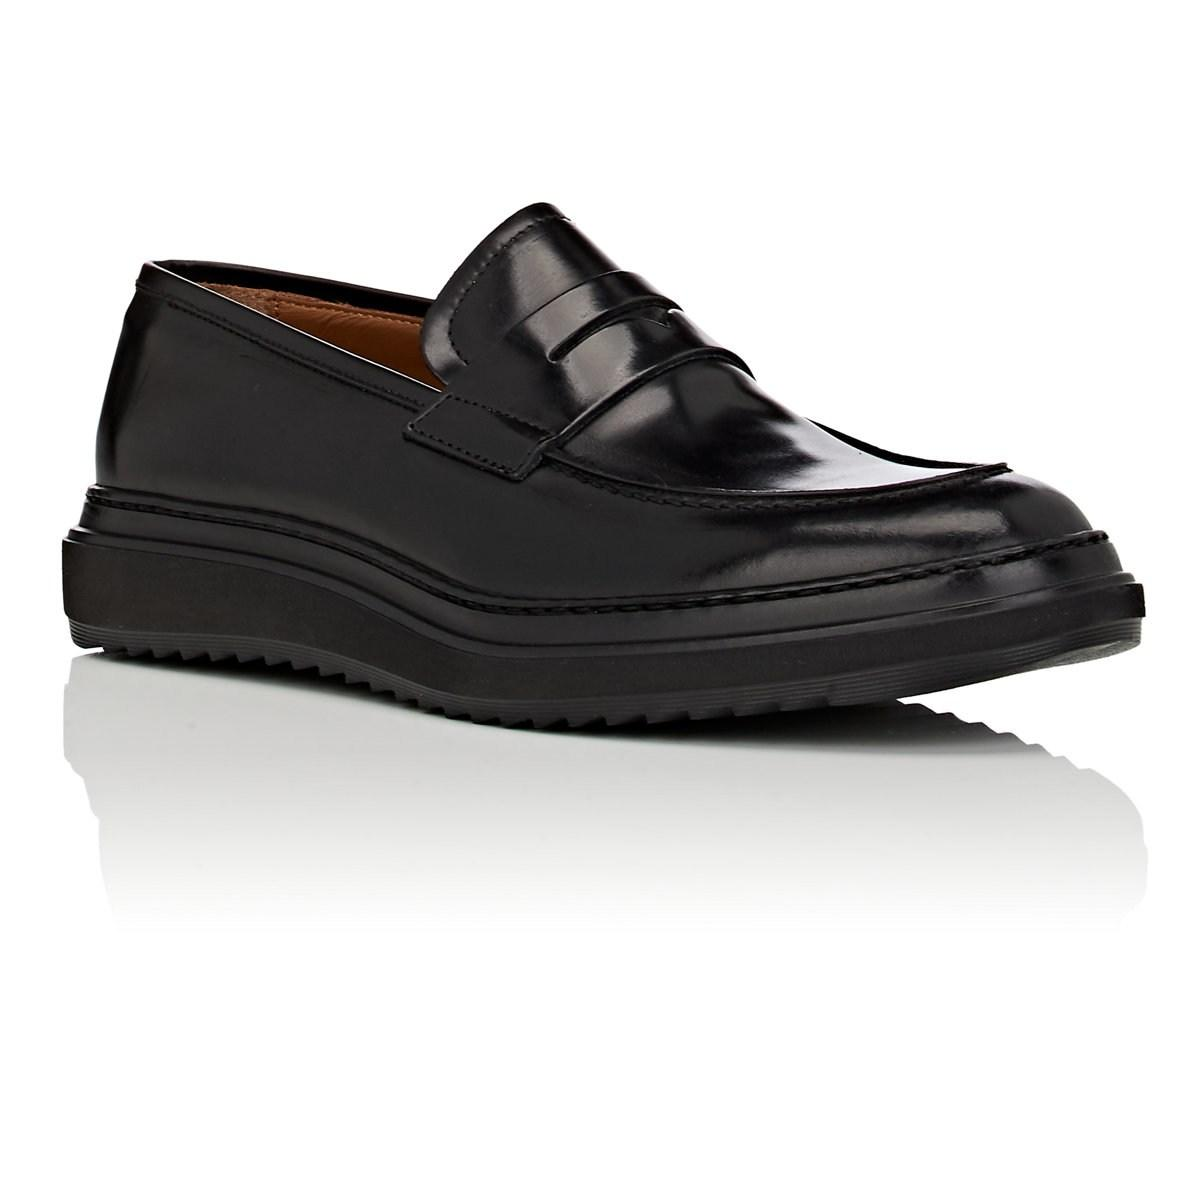 ae0fe4a02ff05 Barneys New York Black Wedge-sole Suede Penny Loafers for men. View  fullscreen